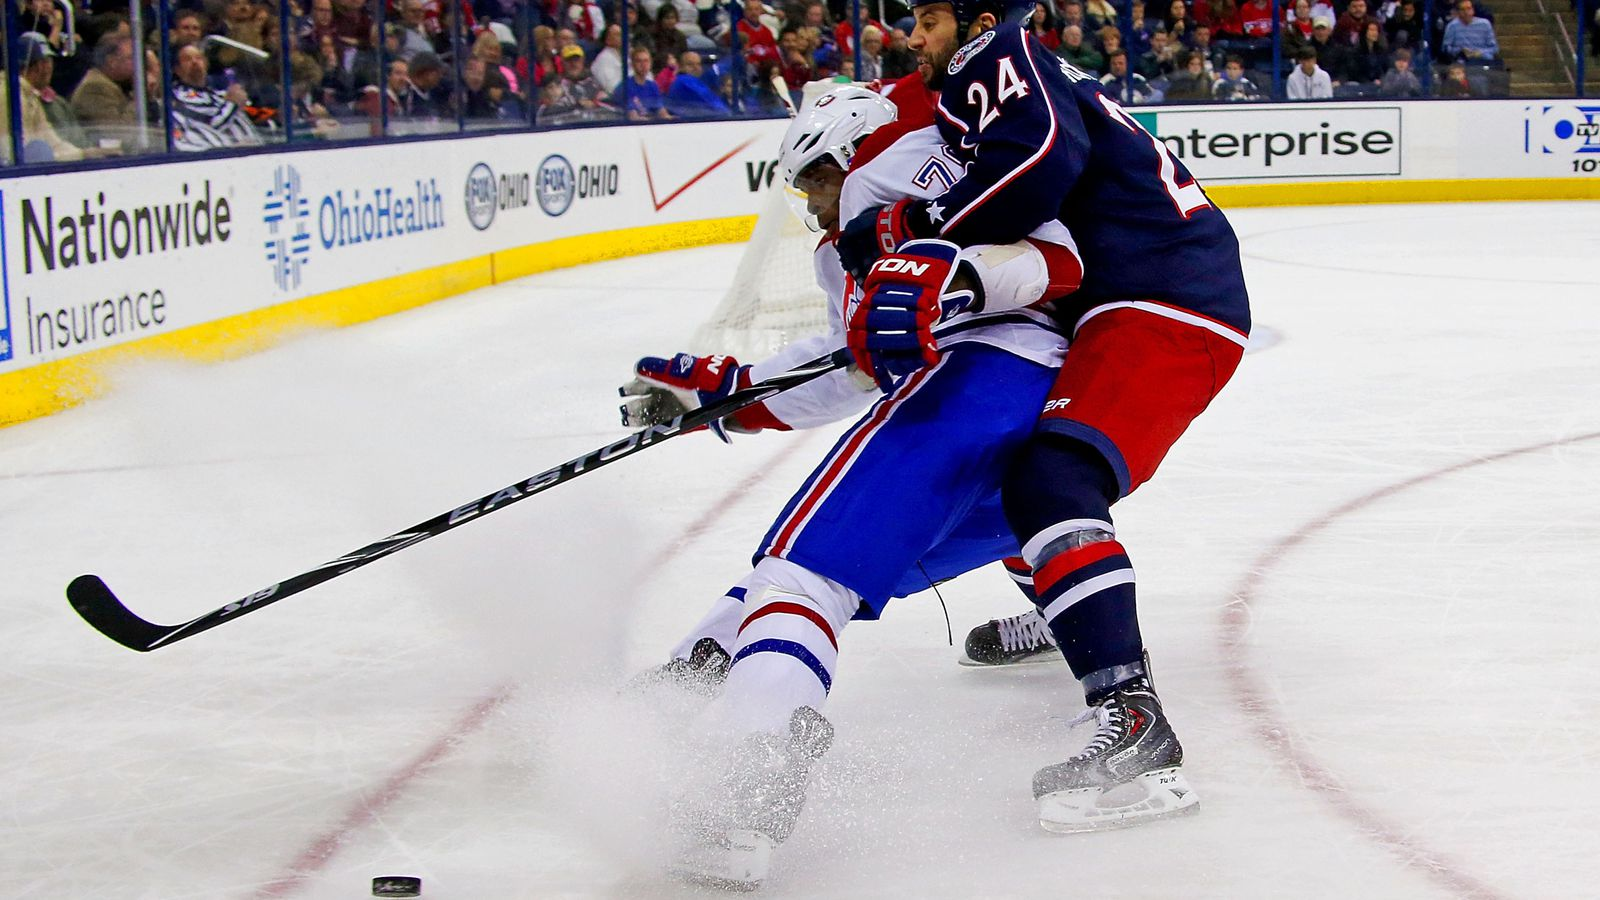 Canadiens Vs Blue Jackets Preview - Eyes On The Prize